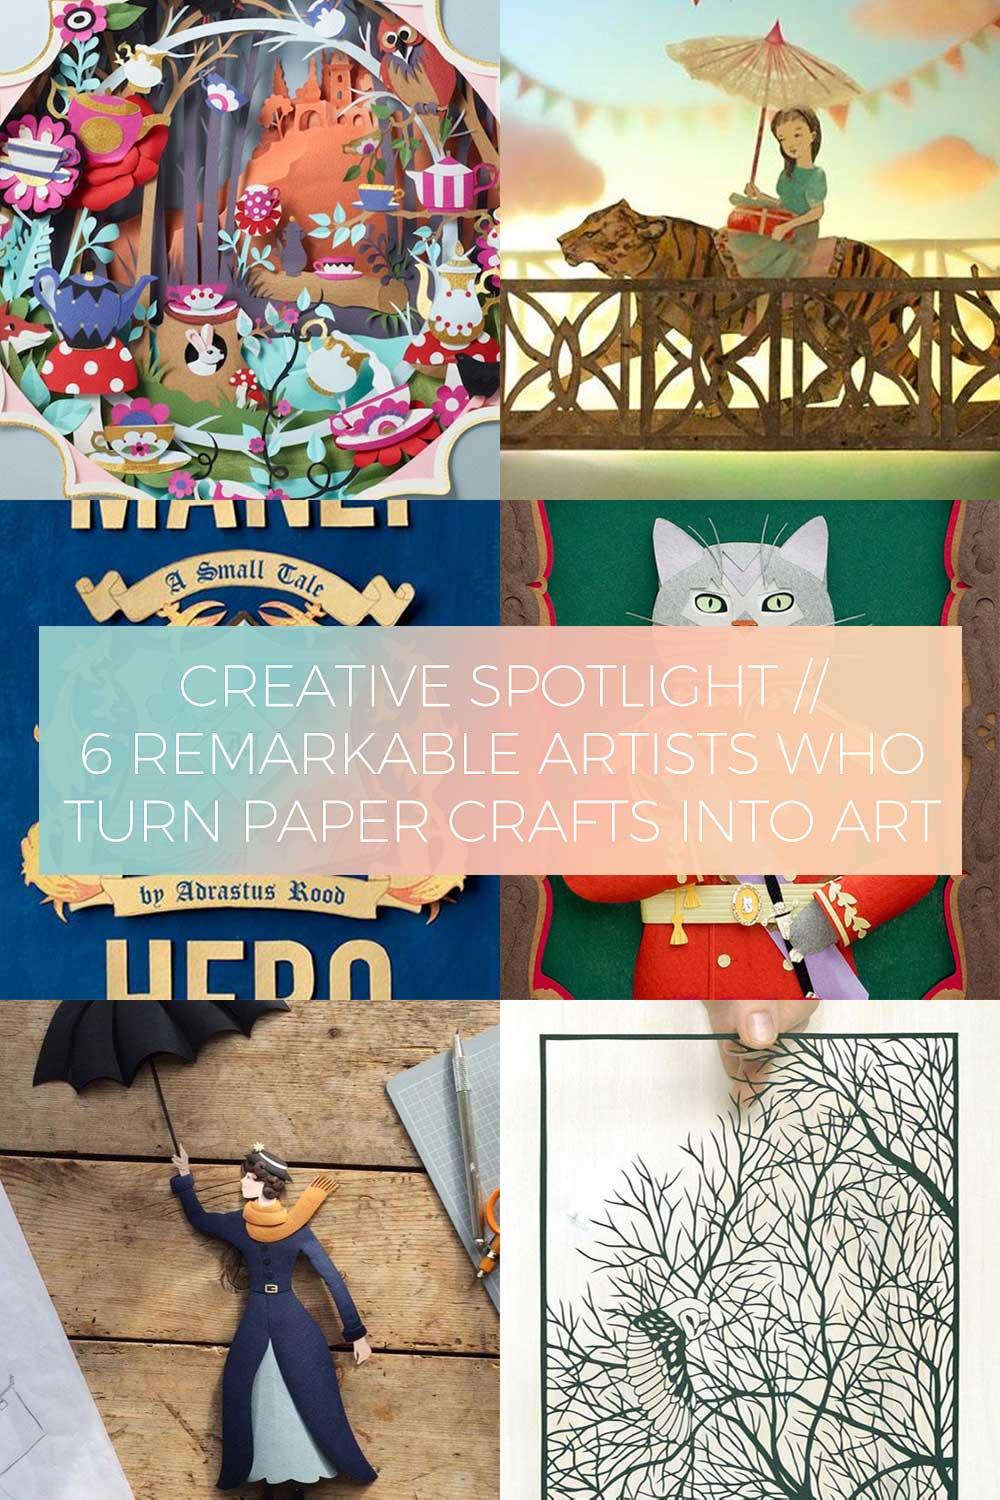 6 Remarkable Artists Who Turn Paper Crafts into Art // Creative Spotlight